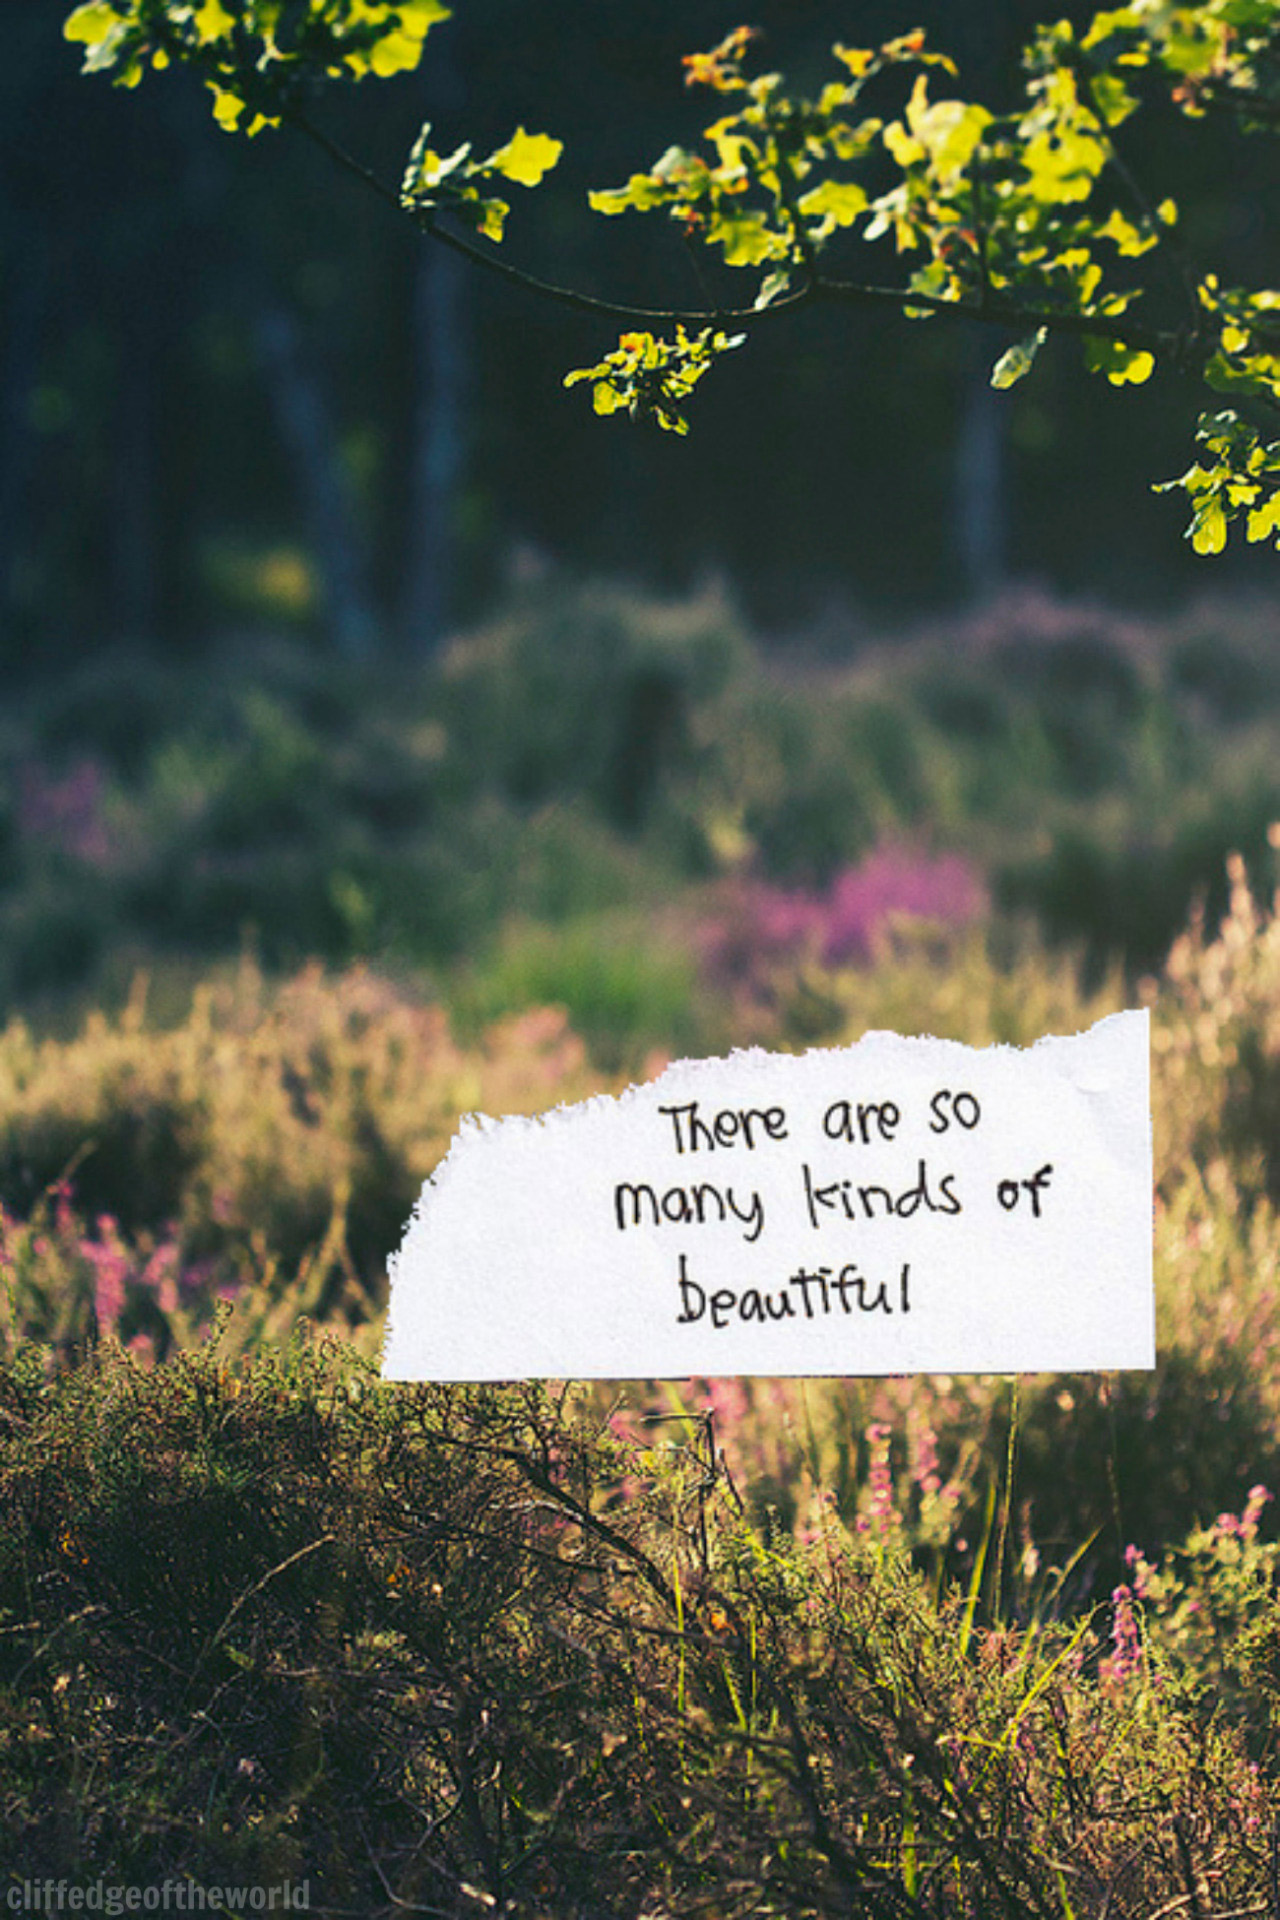 text-tumblr_moes6st63K1rwyxwco1_1280